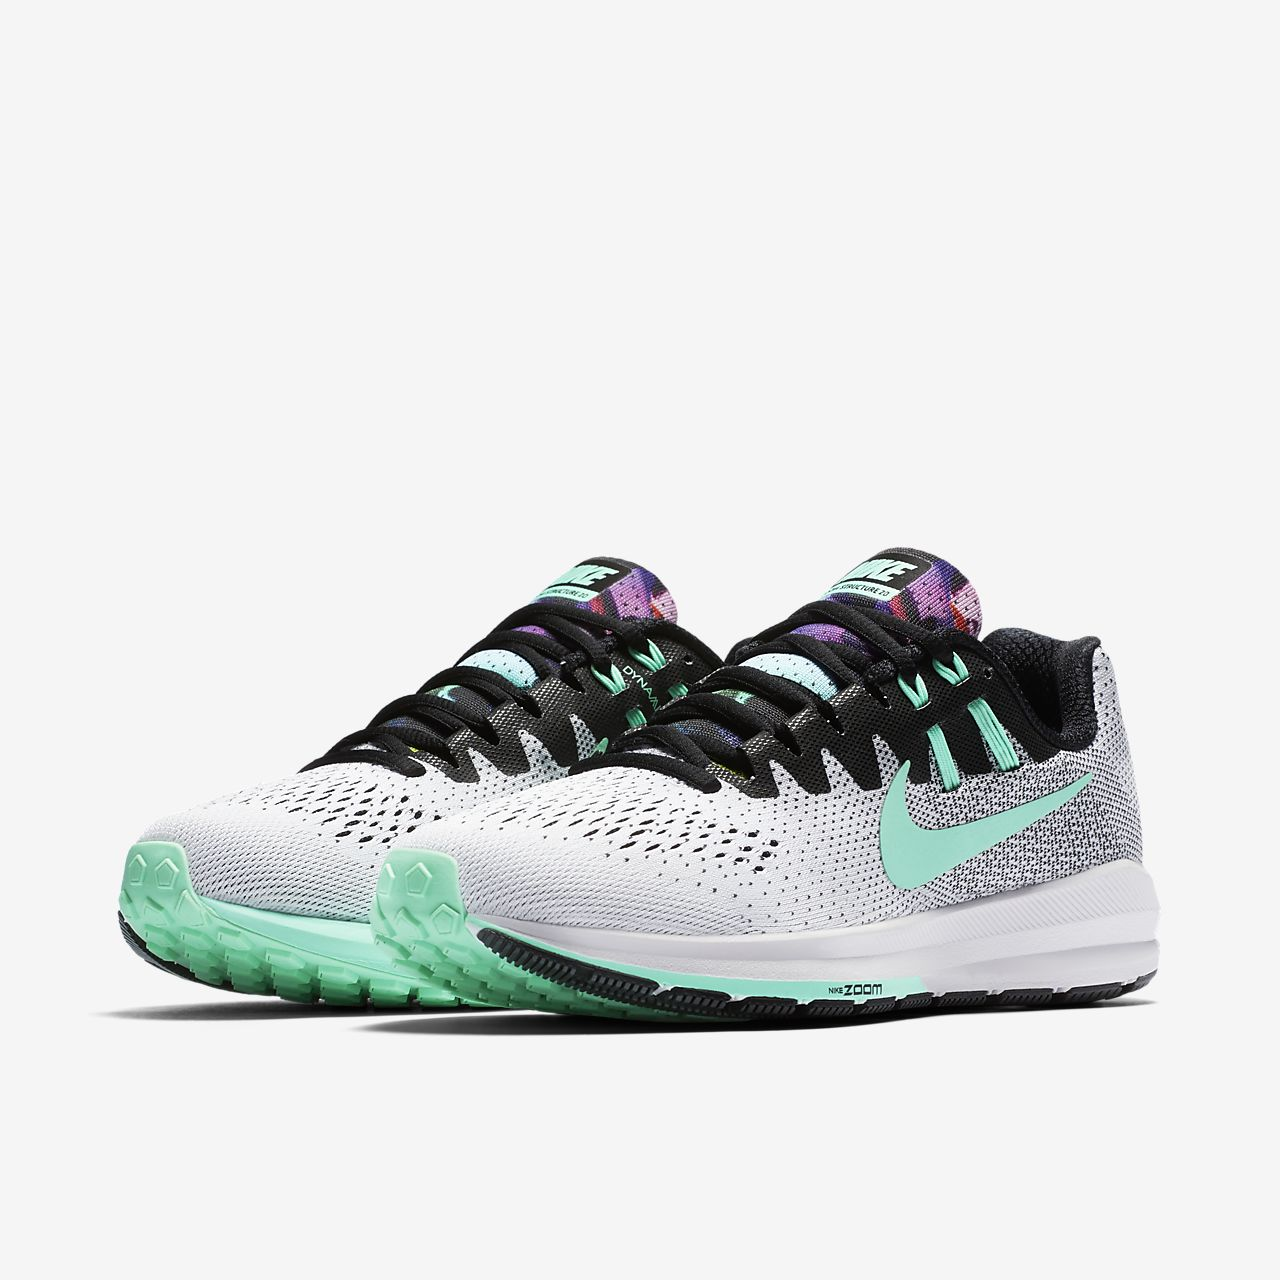 nike free rn 2017 solstice women's running shoe nz